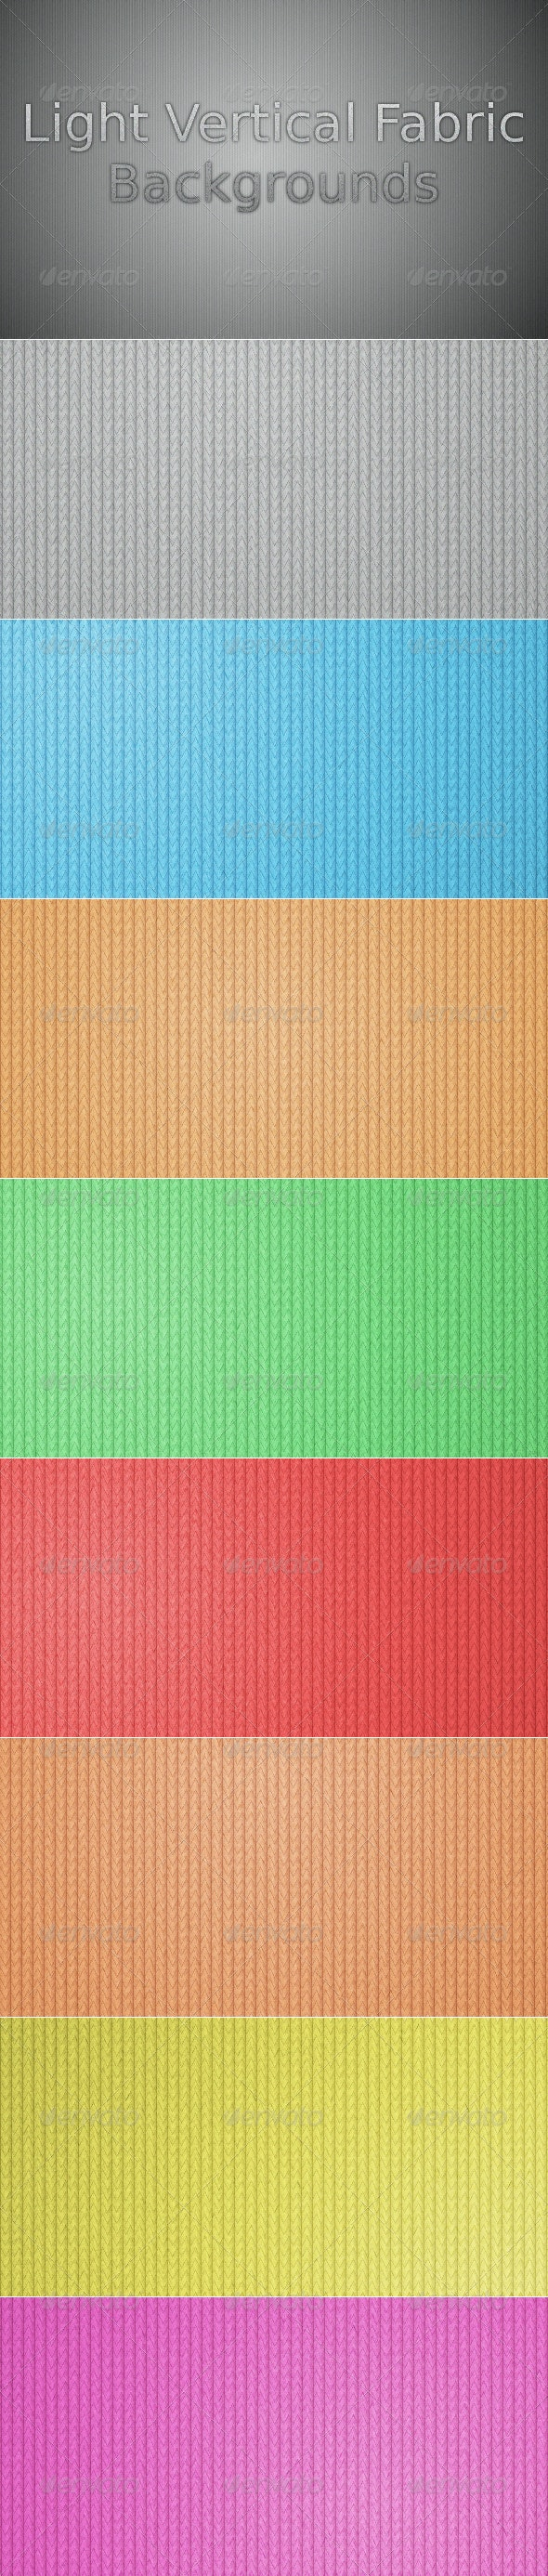 Light Vertical Fabric Backgrounds - Abstract Backgrounds